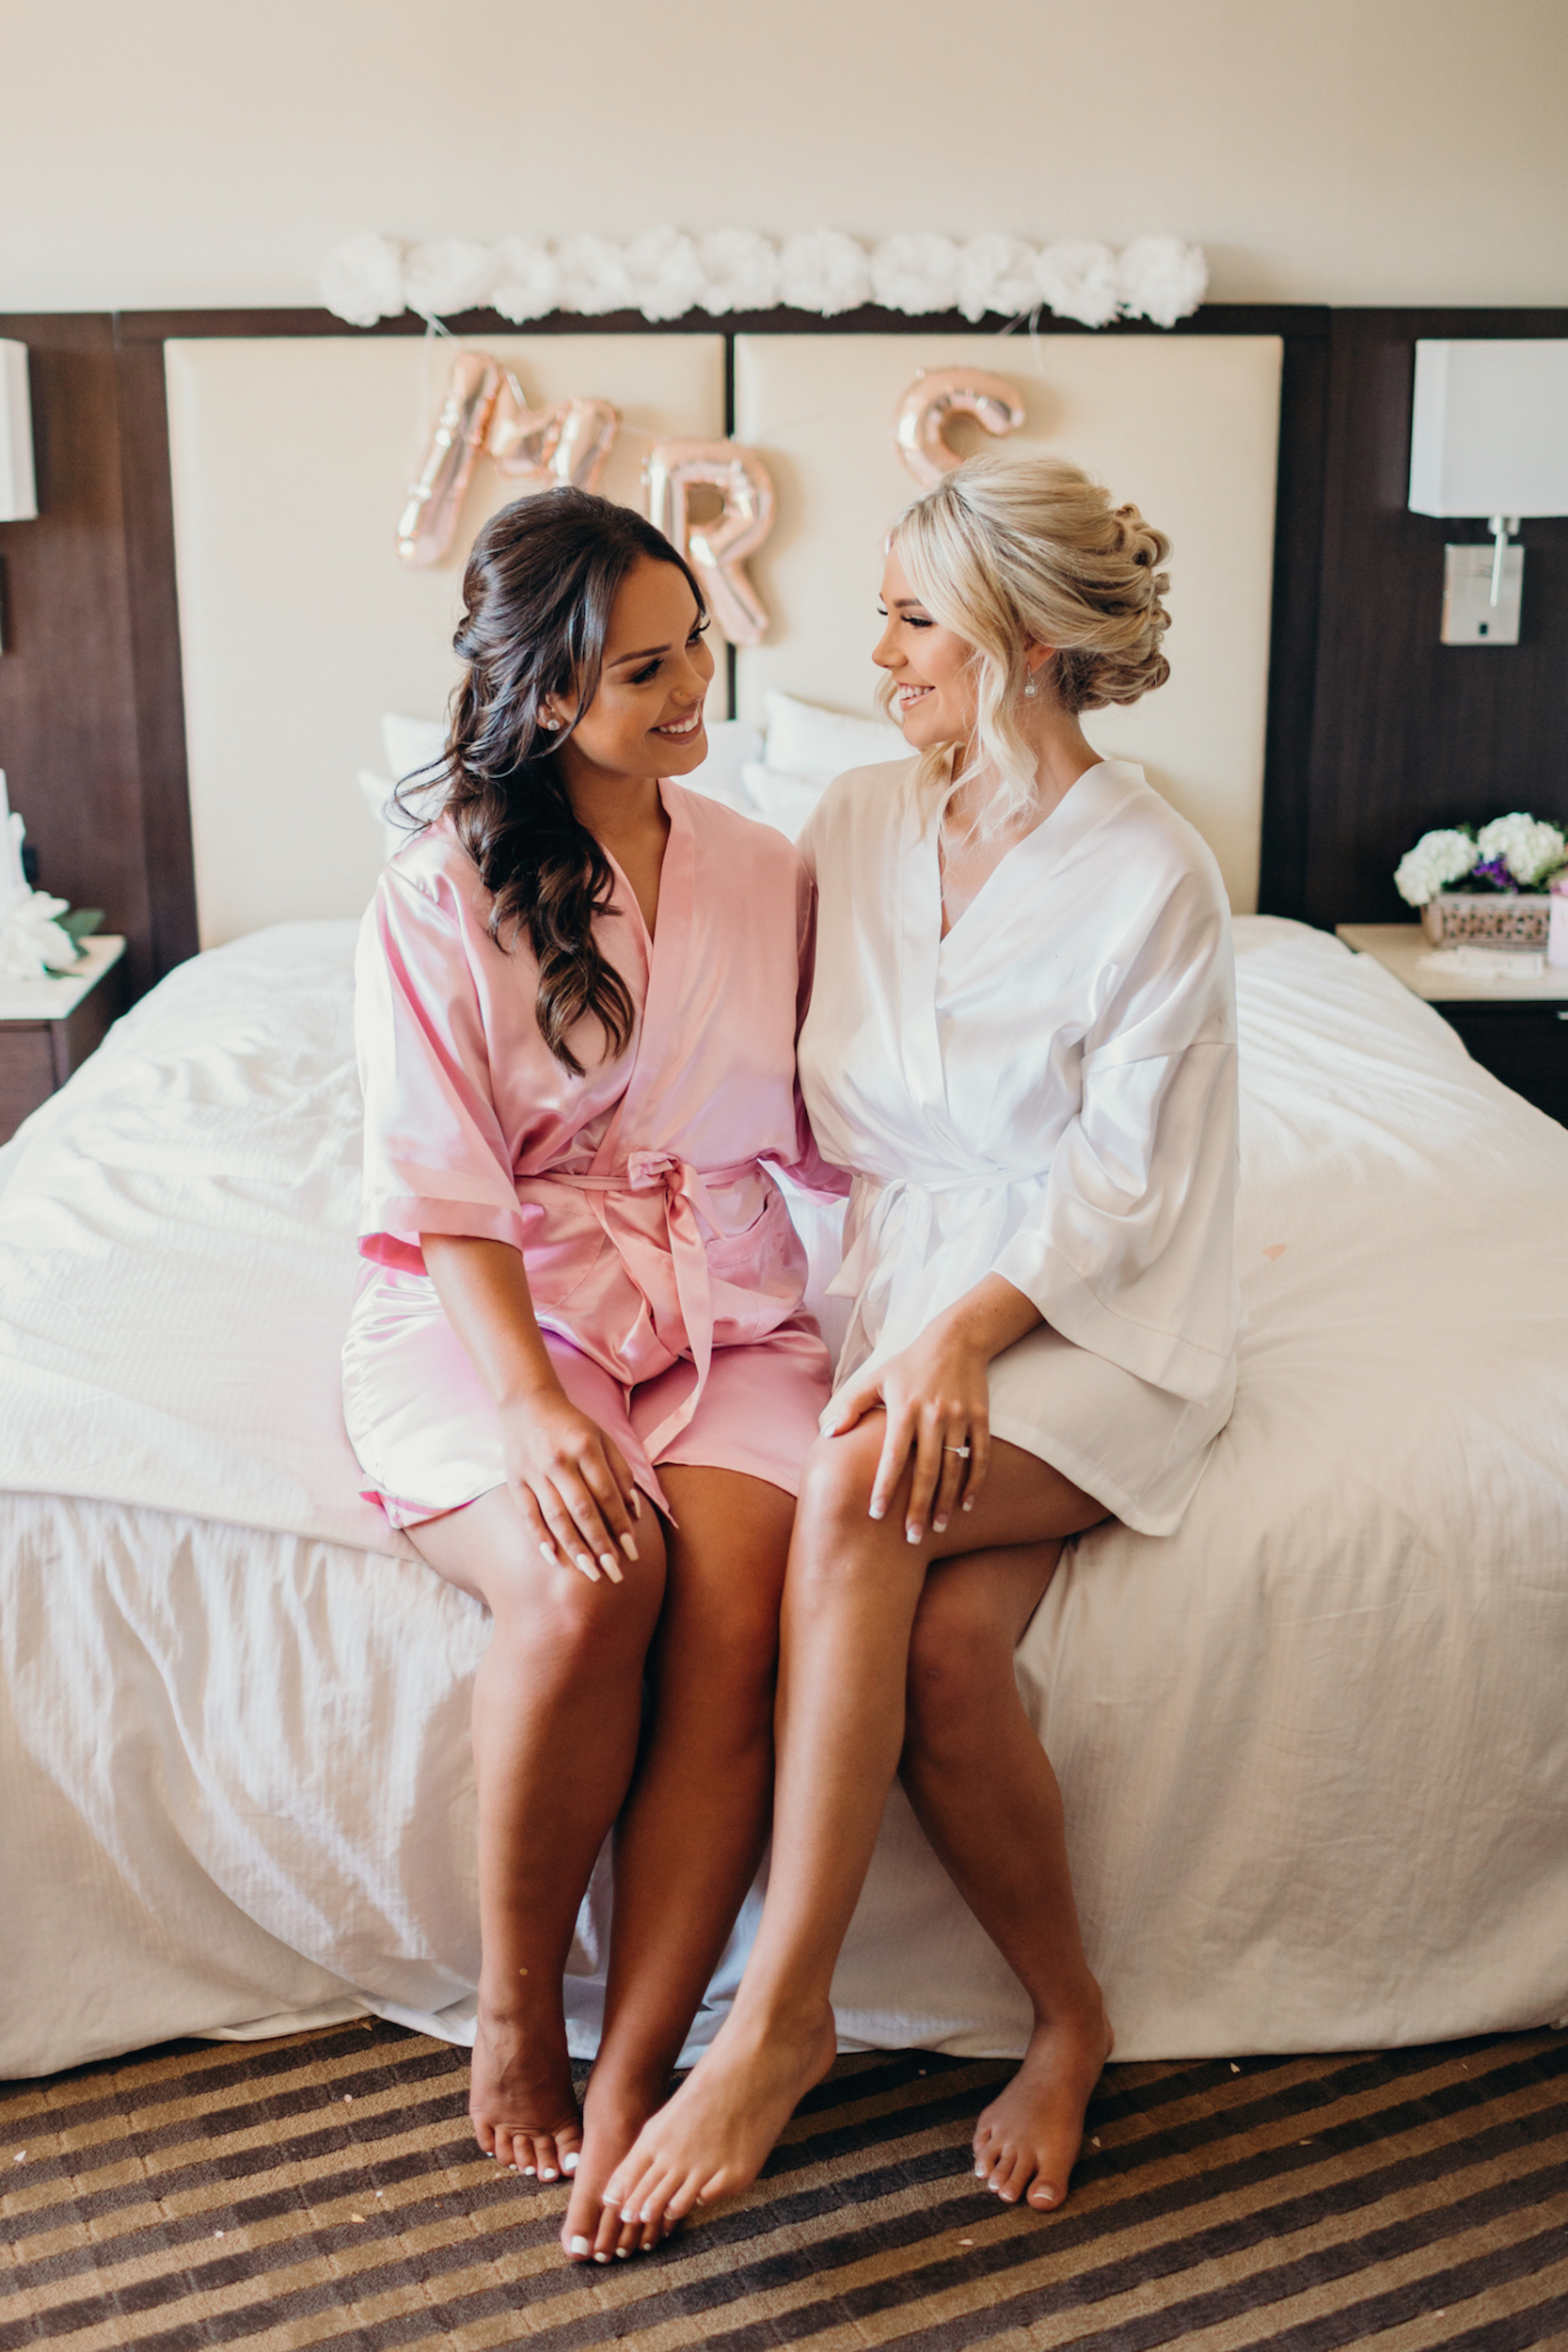 Maid Of Honor Hotel Pleasanton.jpg